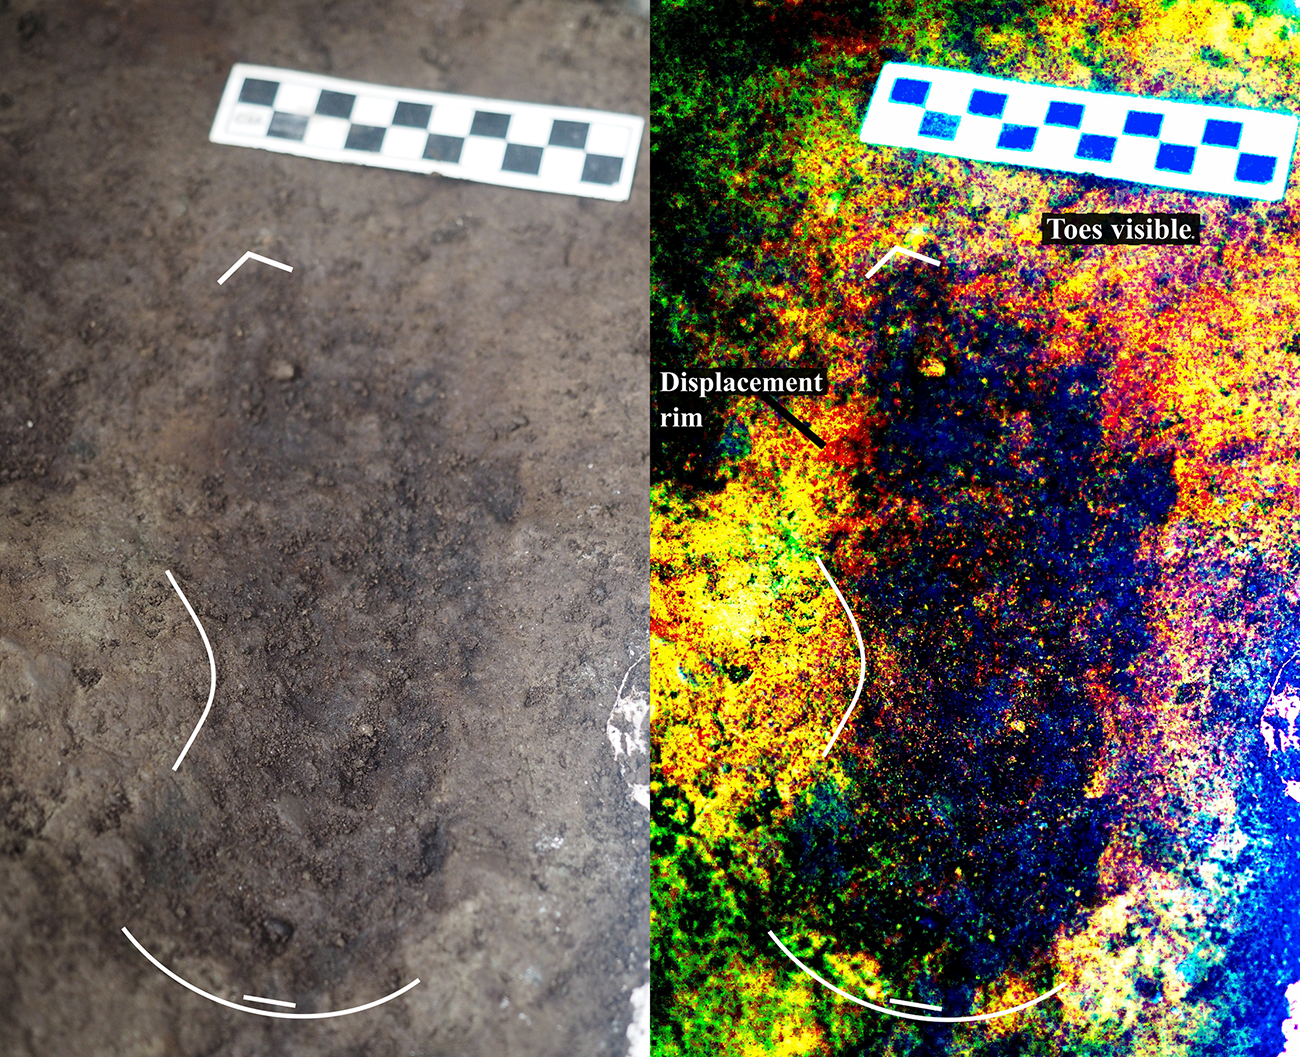 One of the prints discovered, beside a digitally-enhanced image that more clearly shows toe impressions and an arch indicating that this is a right footprint. (Credit: Duncan McLaren)